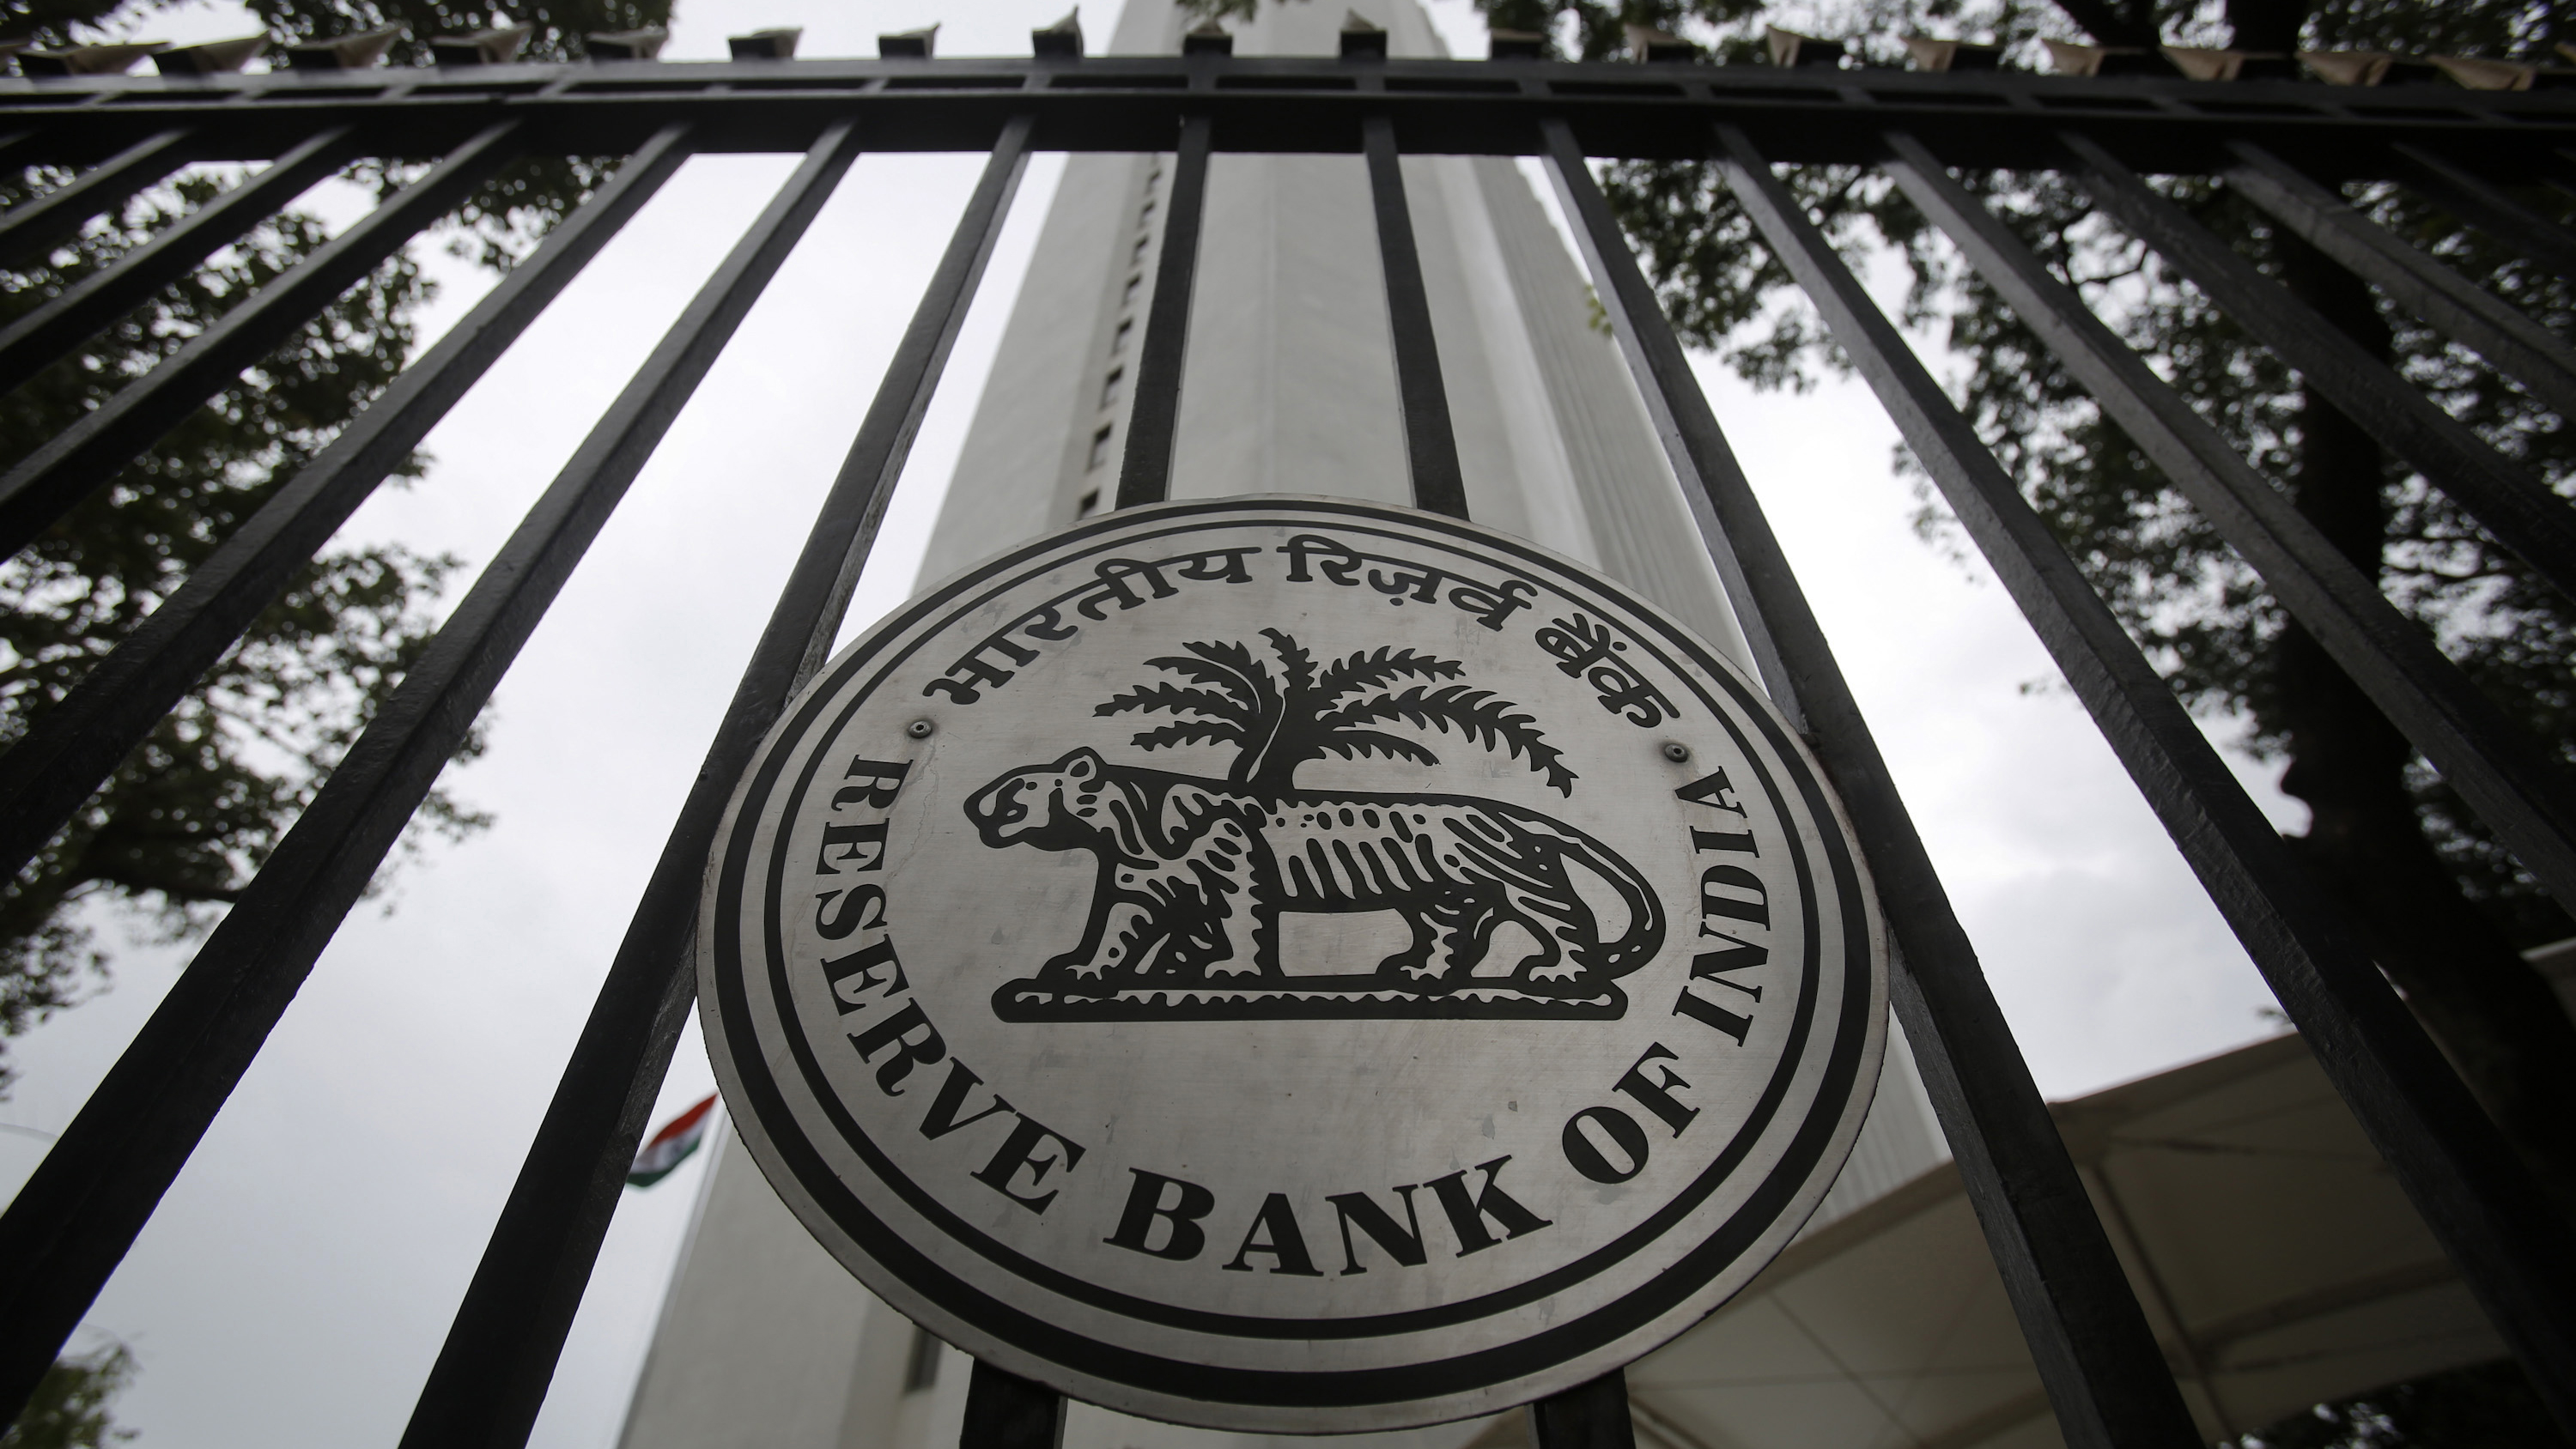 Did RBI have Authority to Issue Rs 2,000 and Rs 200 Currency